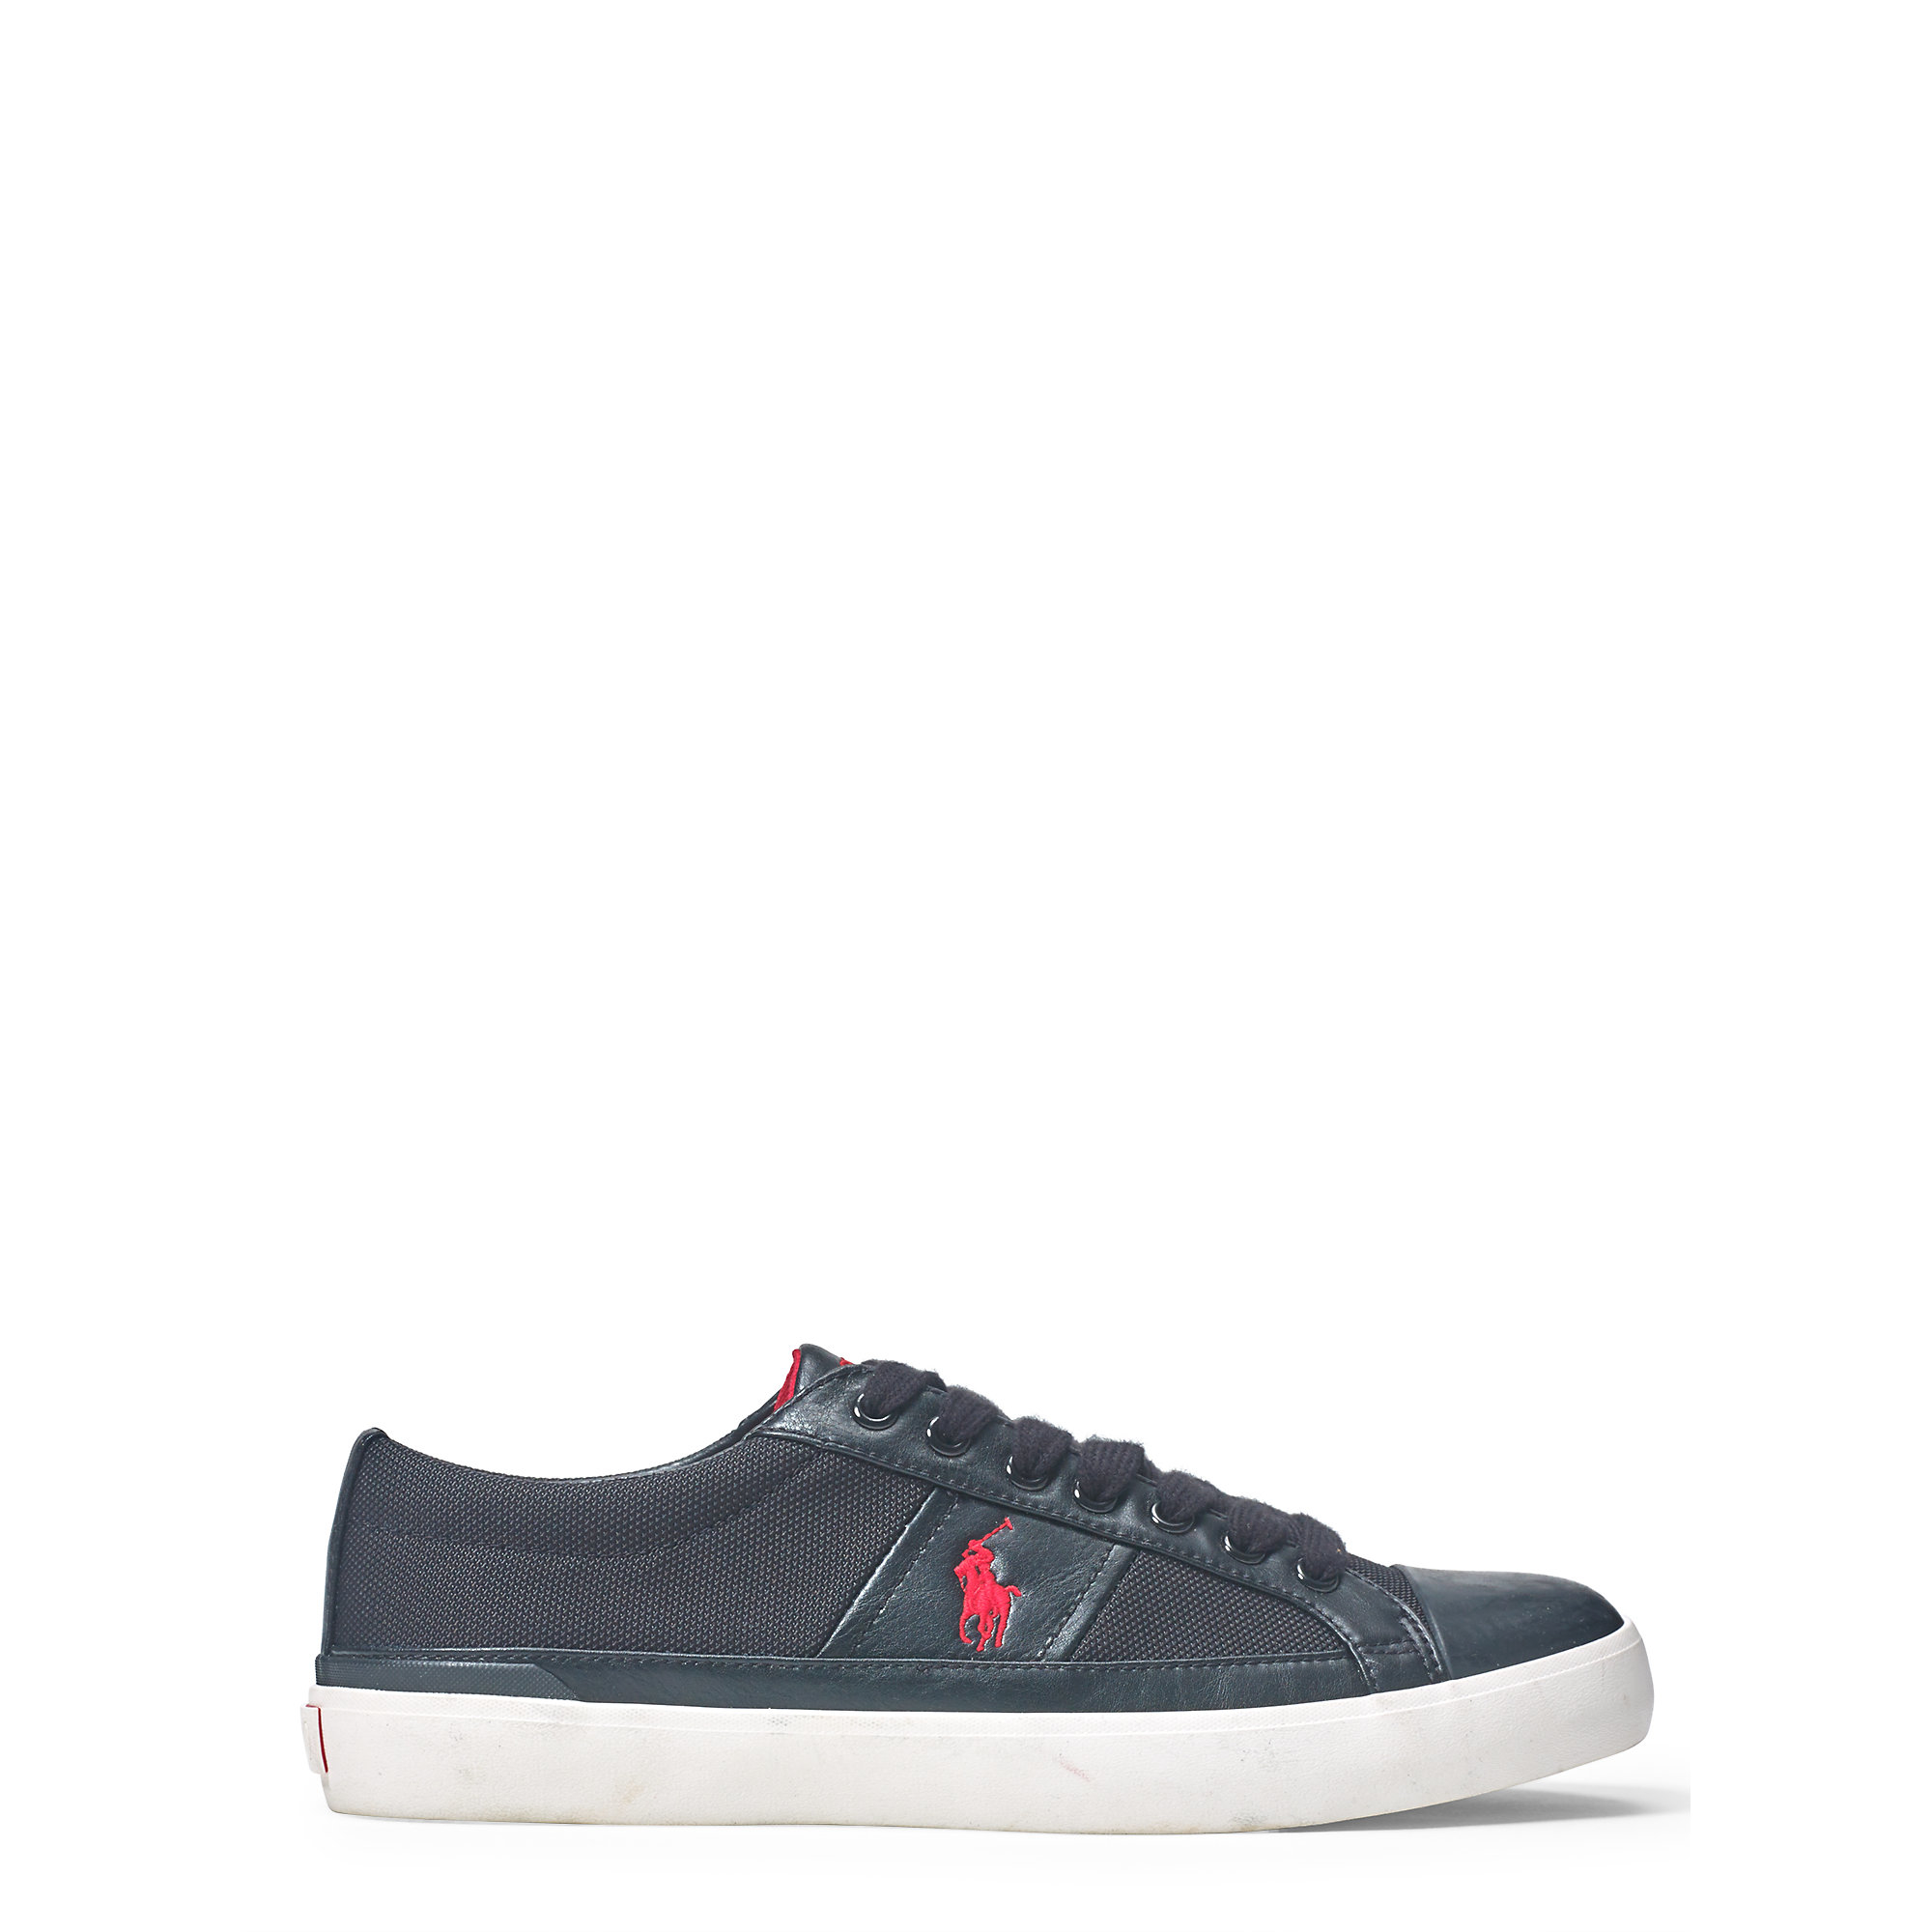 polo ralph lauren hurlston canvas sneaker in black for men lyst. Black Bedroom Furniture Sets. Home Design Ideas